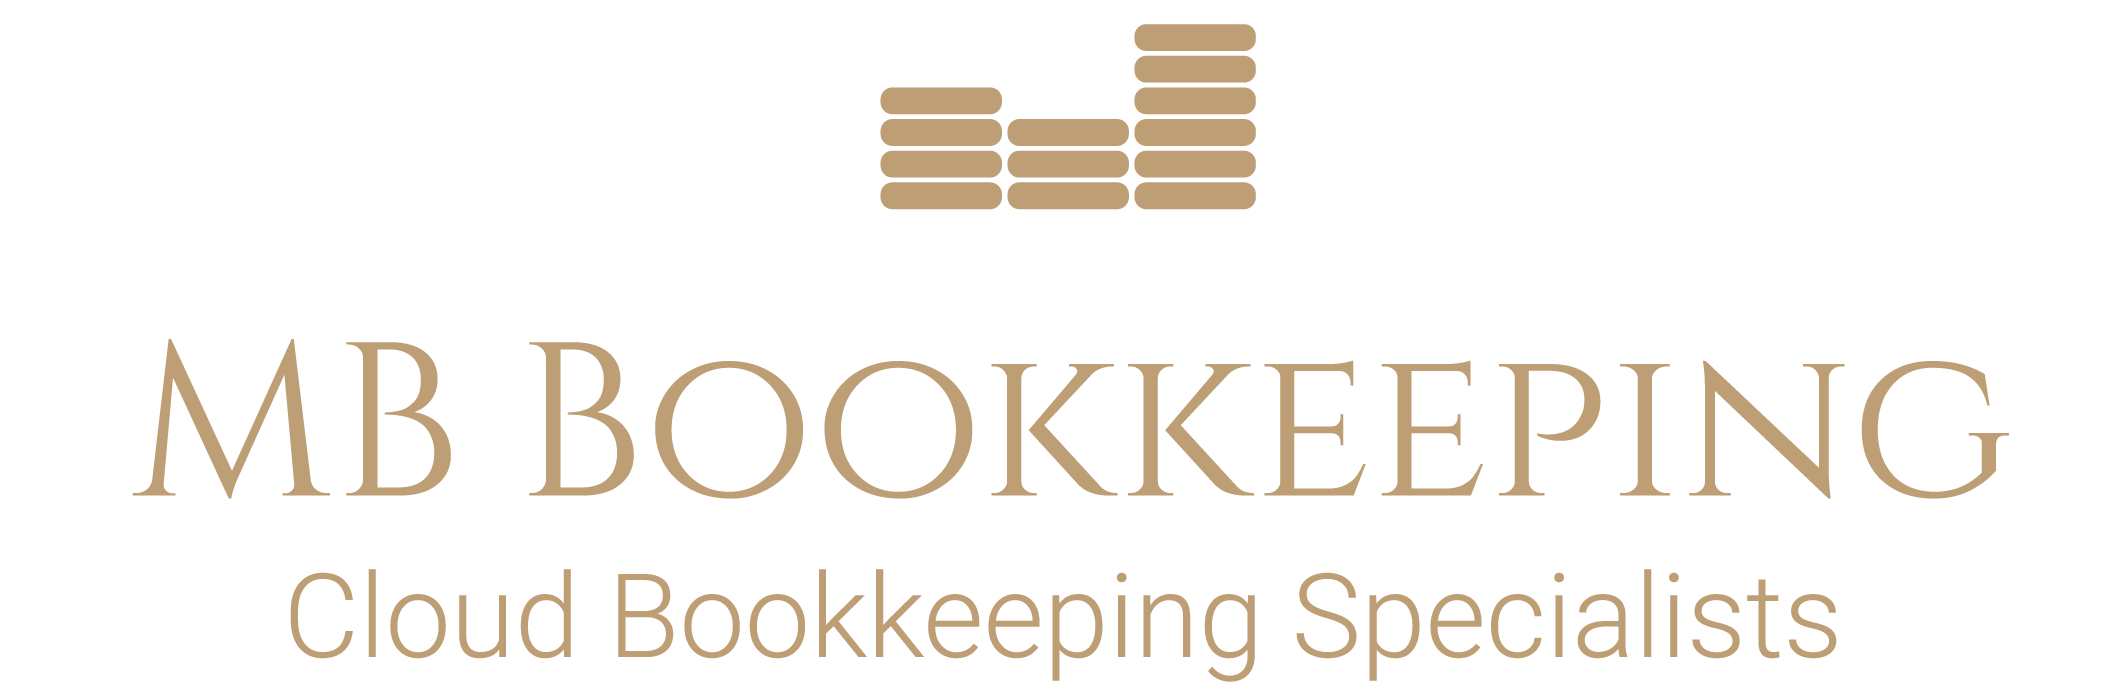 MB Bookkeeping